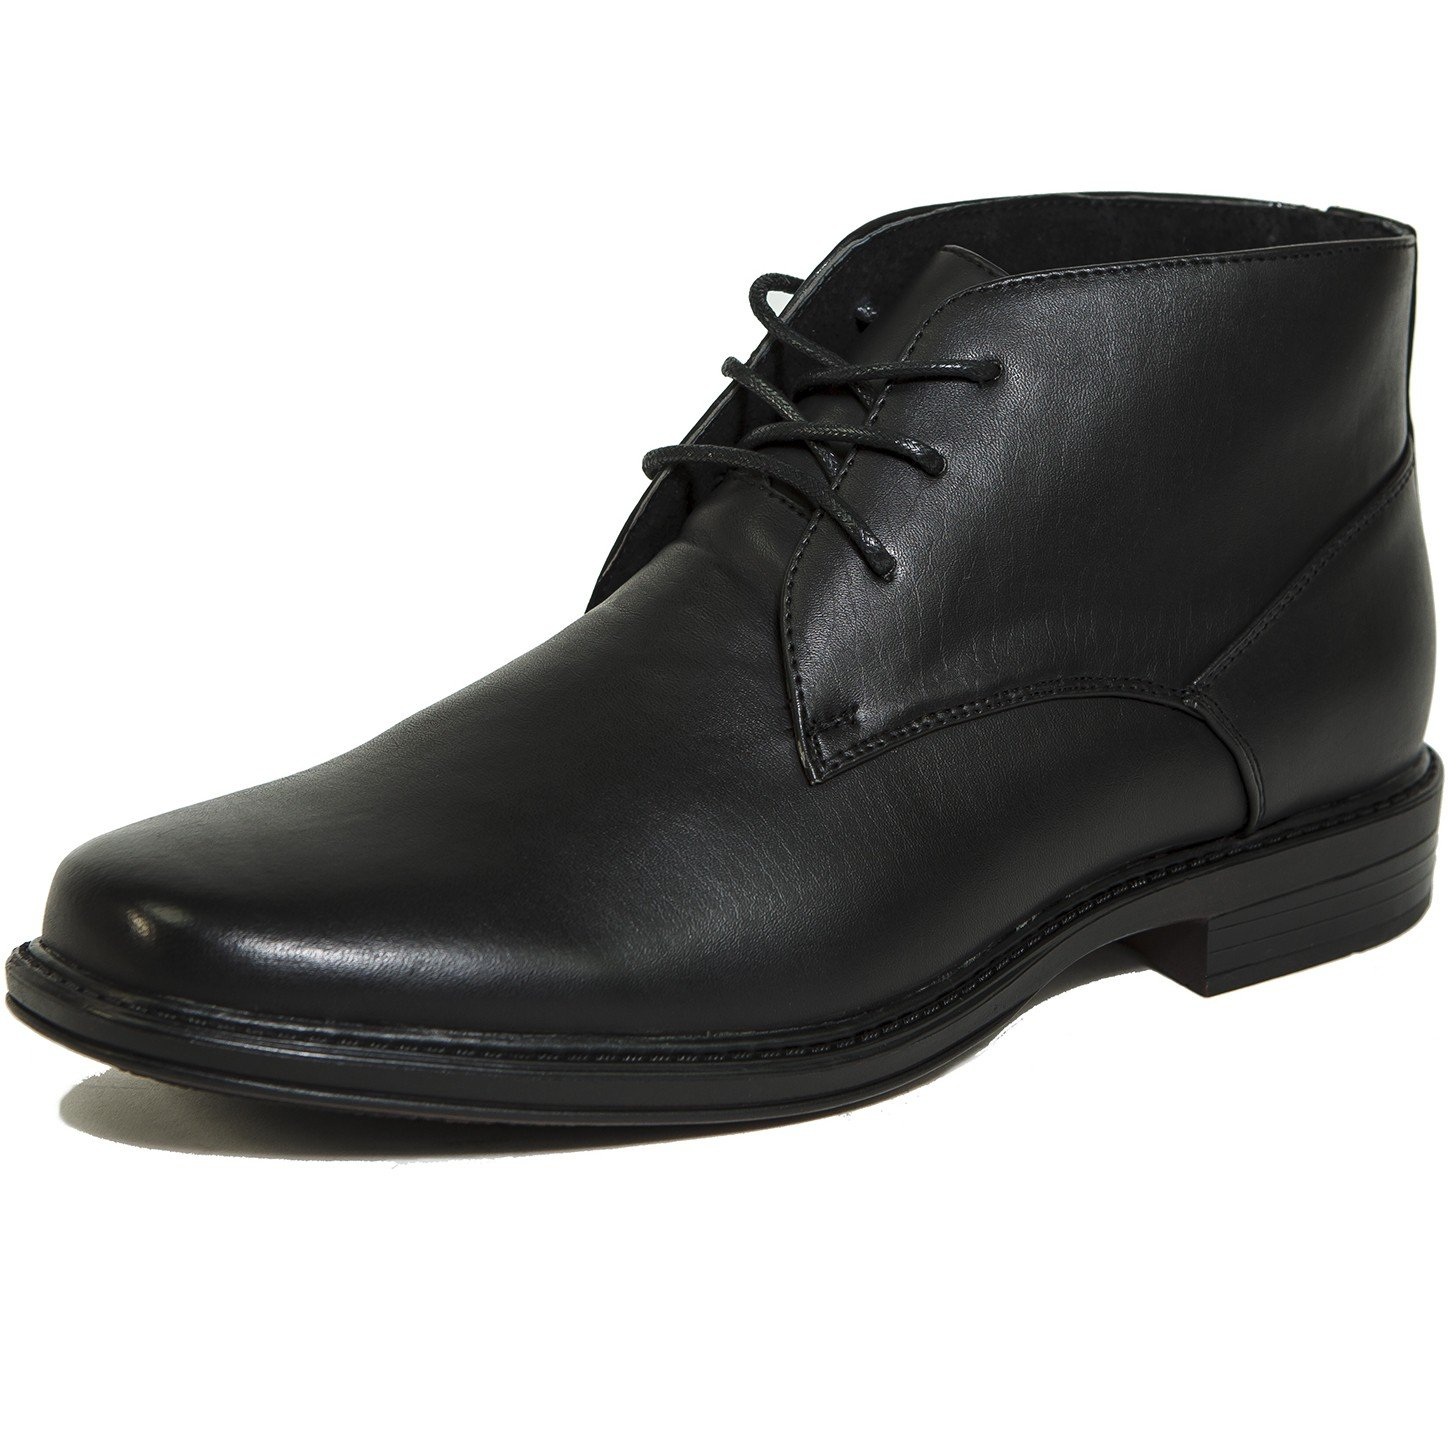 alpine swiss S308 Men's Leather Lined Dressy Ankle Boots, Black, 9